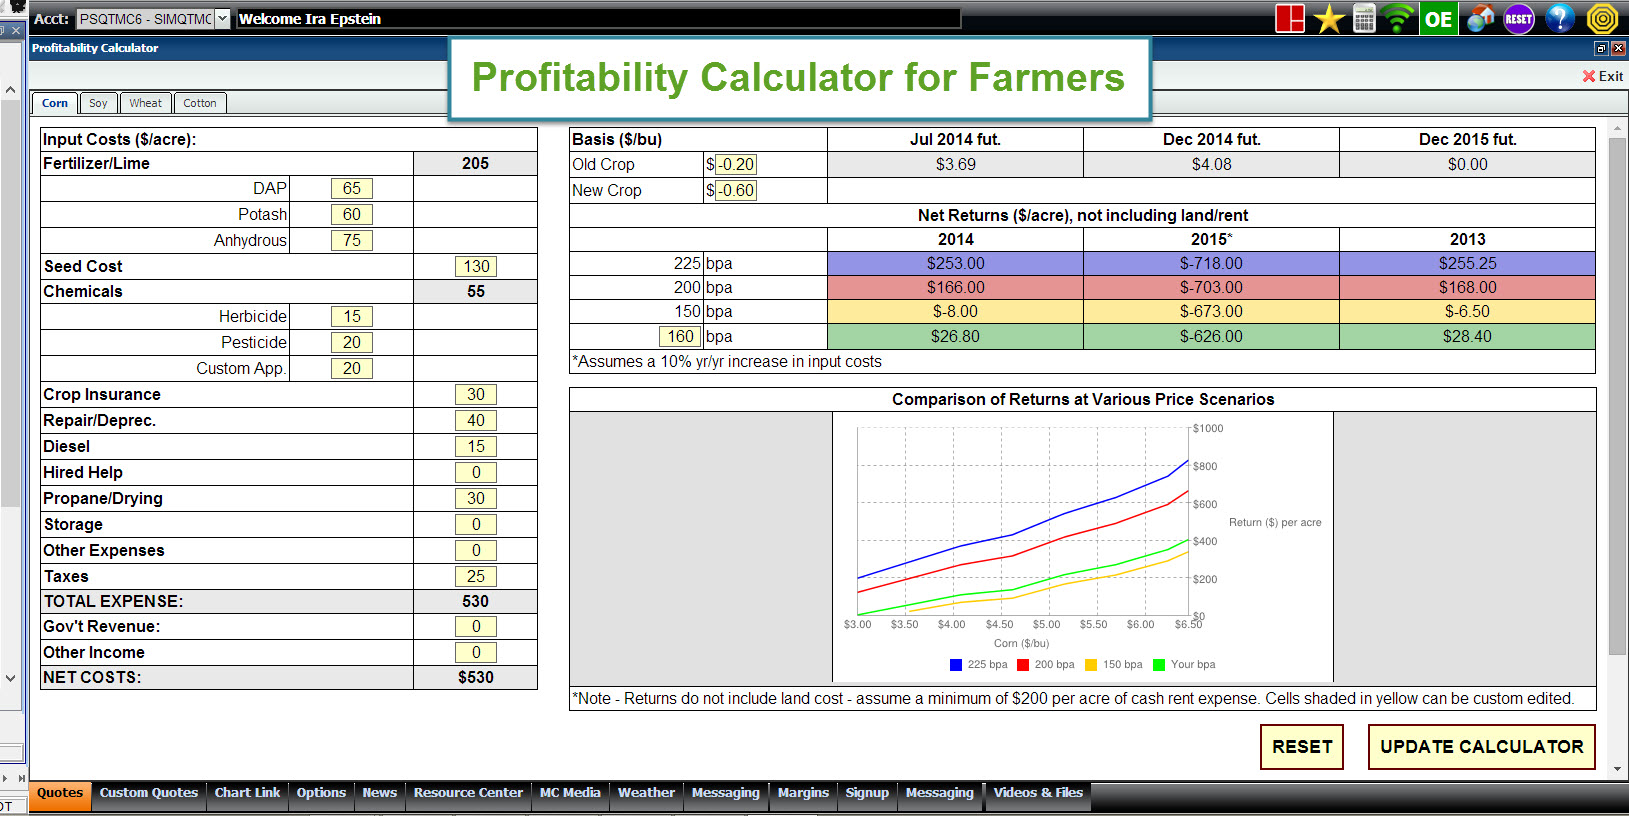 Profitability Calculator